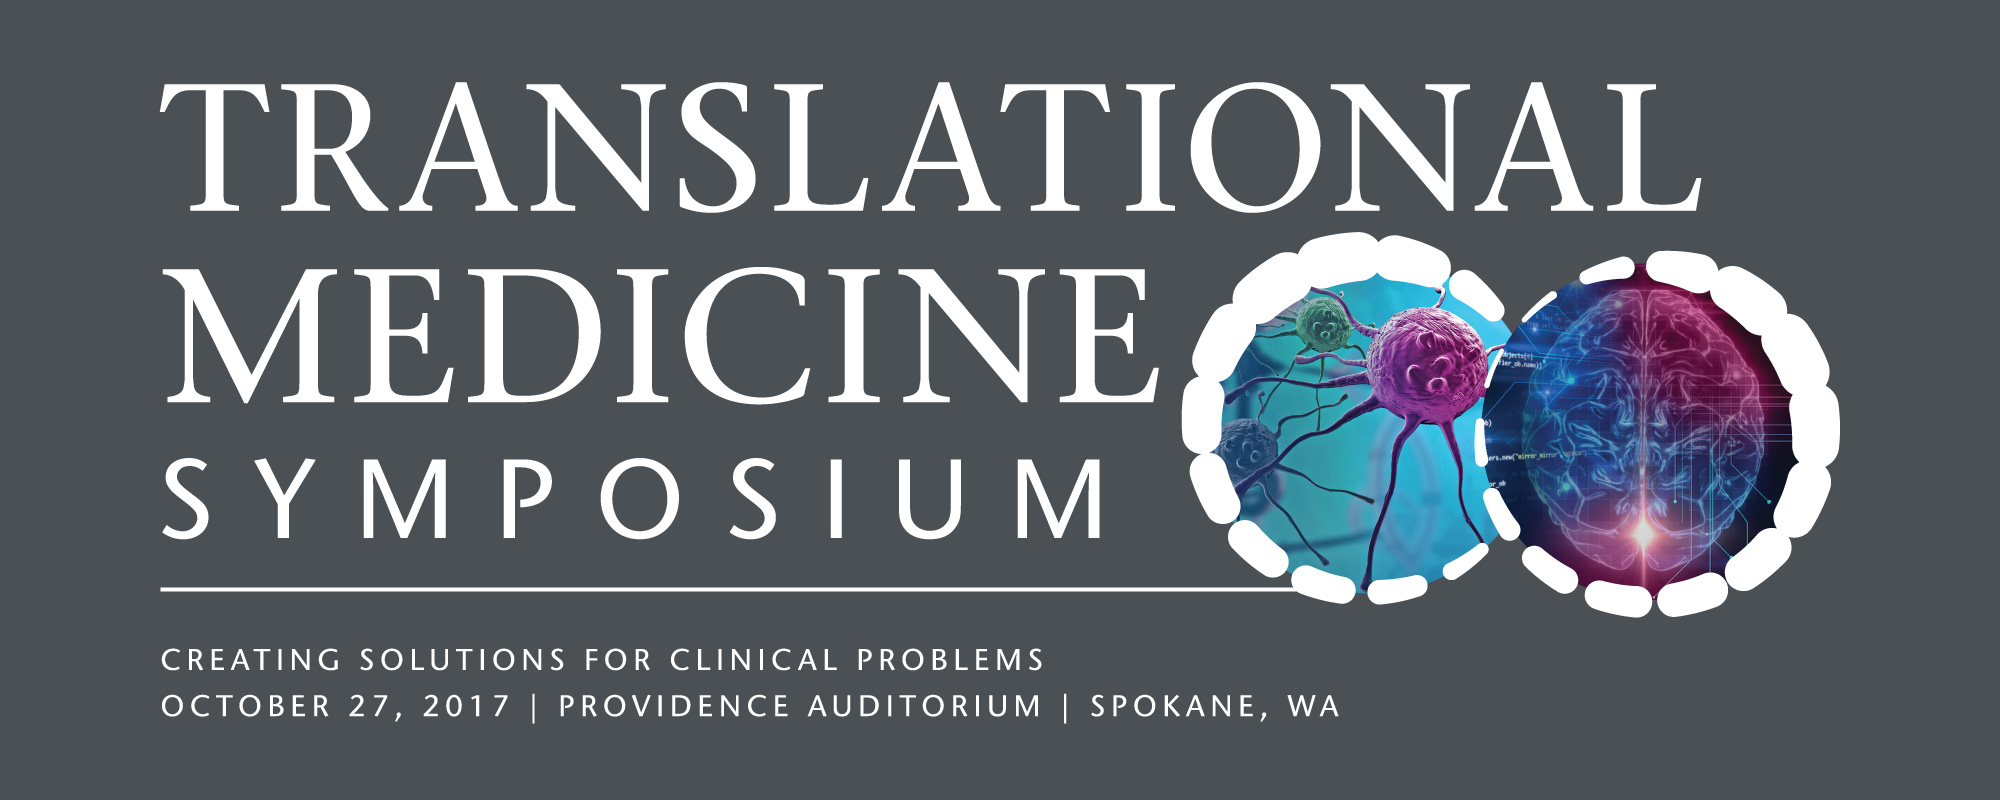 Translational Medicine Symposium Header